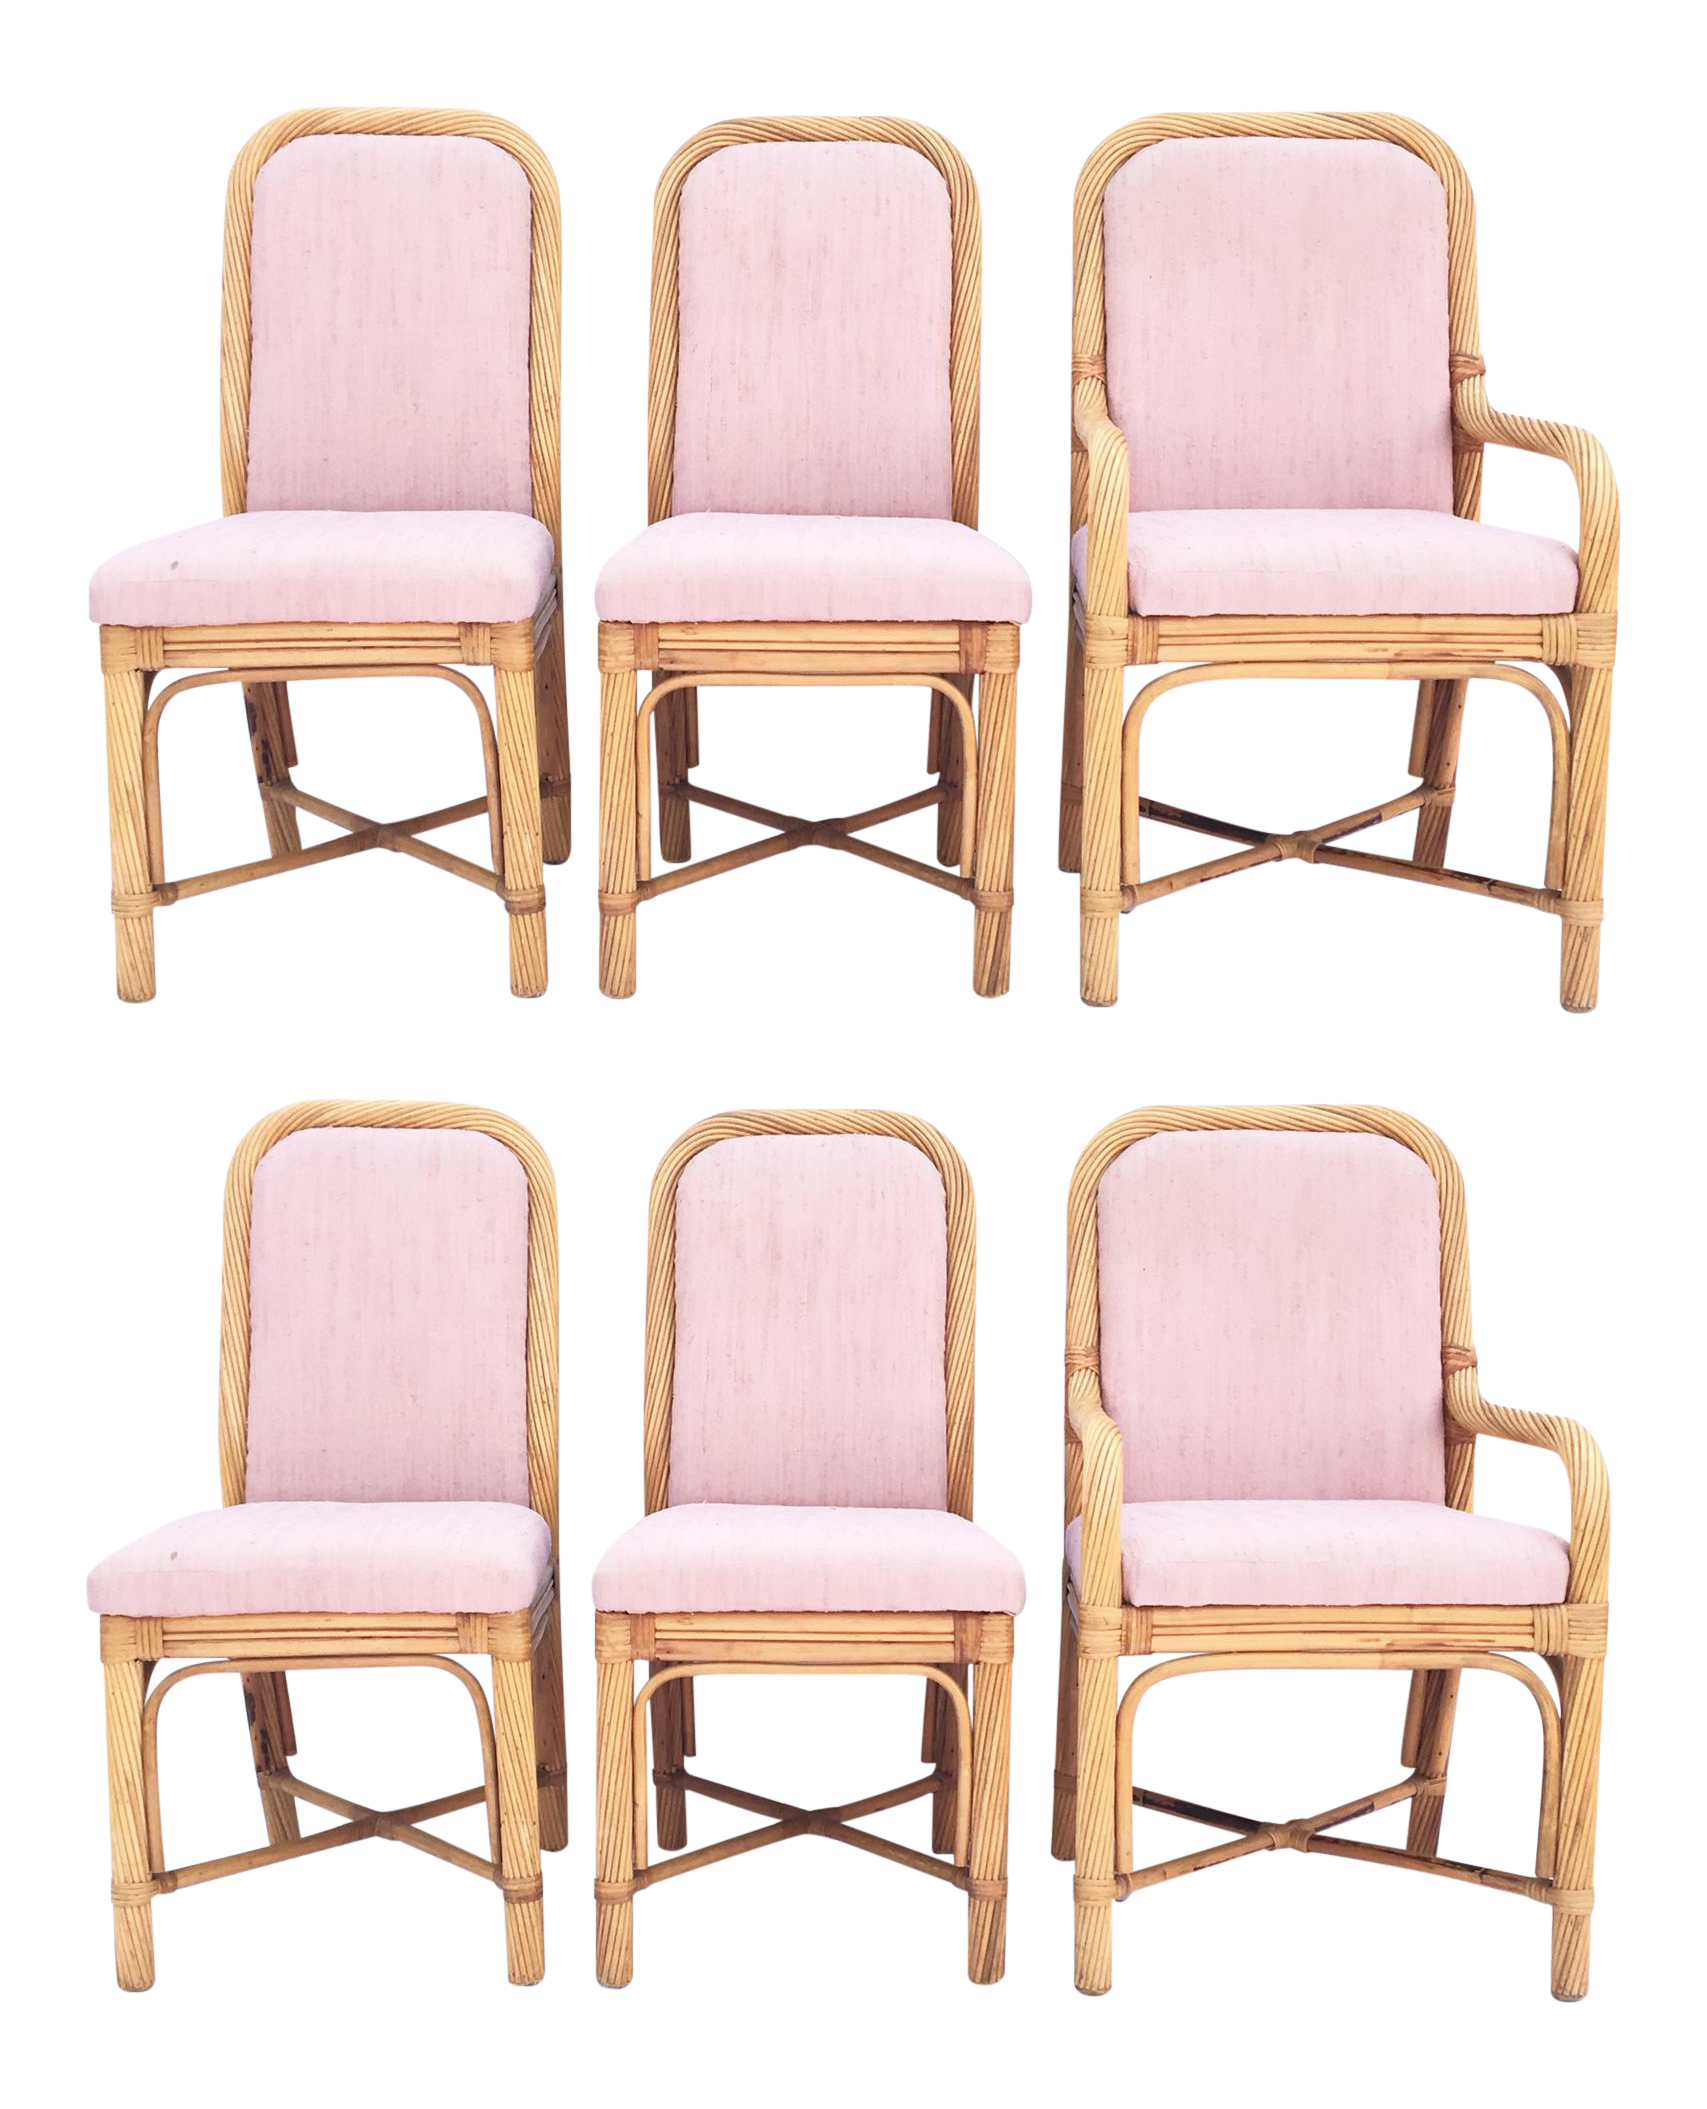 Twisted Rattan Bent Wood Pencil Reed Dining Chairs - Set of 6  sc 1 st  Chairish & 7-Piece American Drew Pencil Rattan Dining Set | Chairish